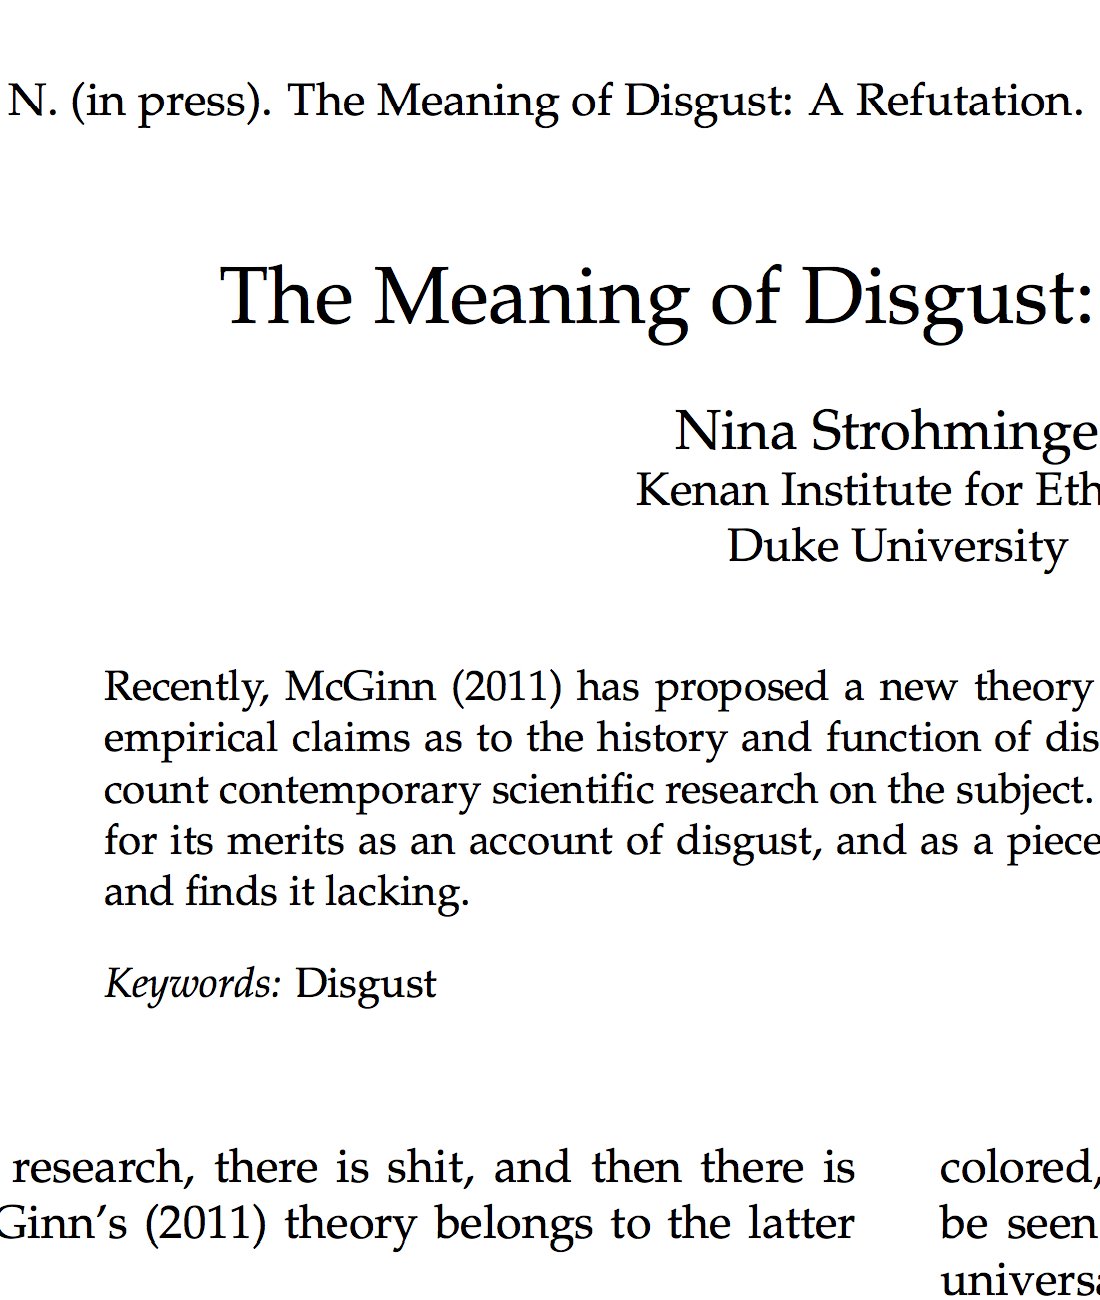 Strohminger, N. (2014). The Meaning of Disgust: A Refutation. Emotion Review, 6(3), 214–216.